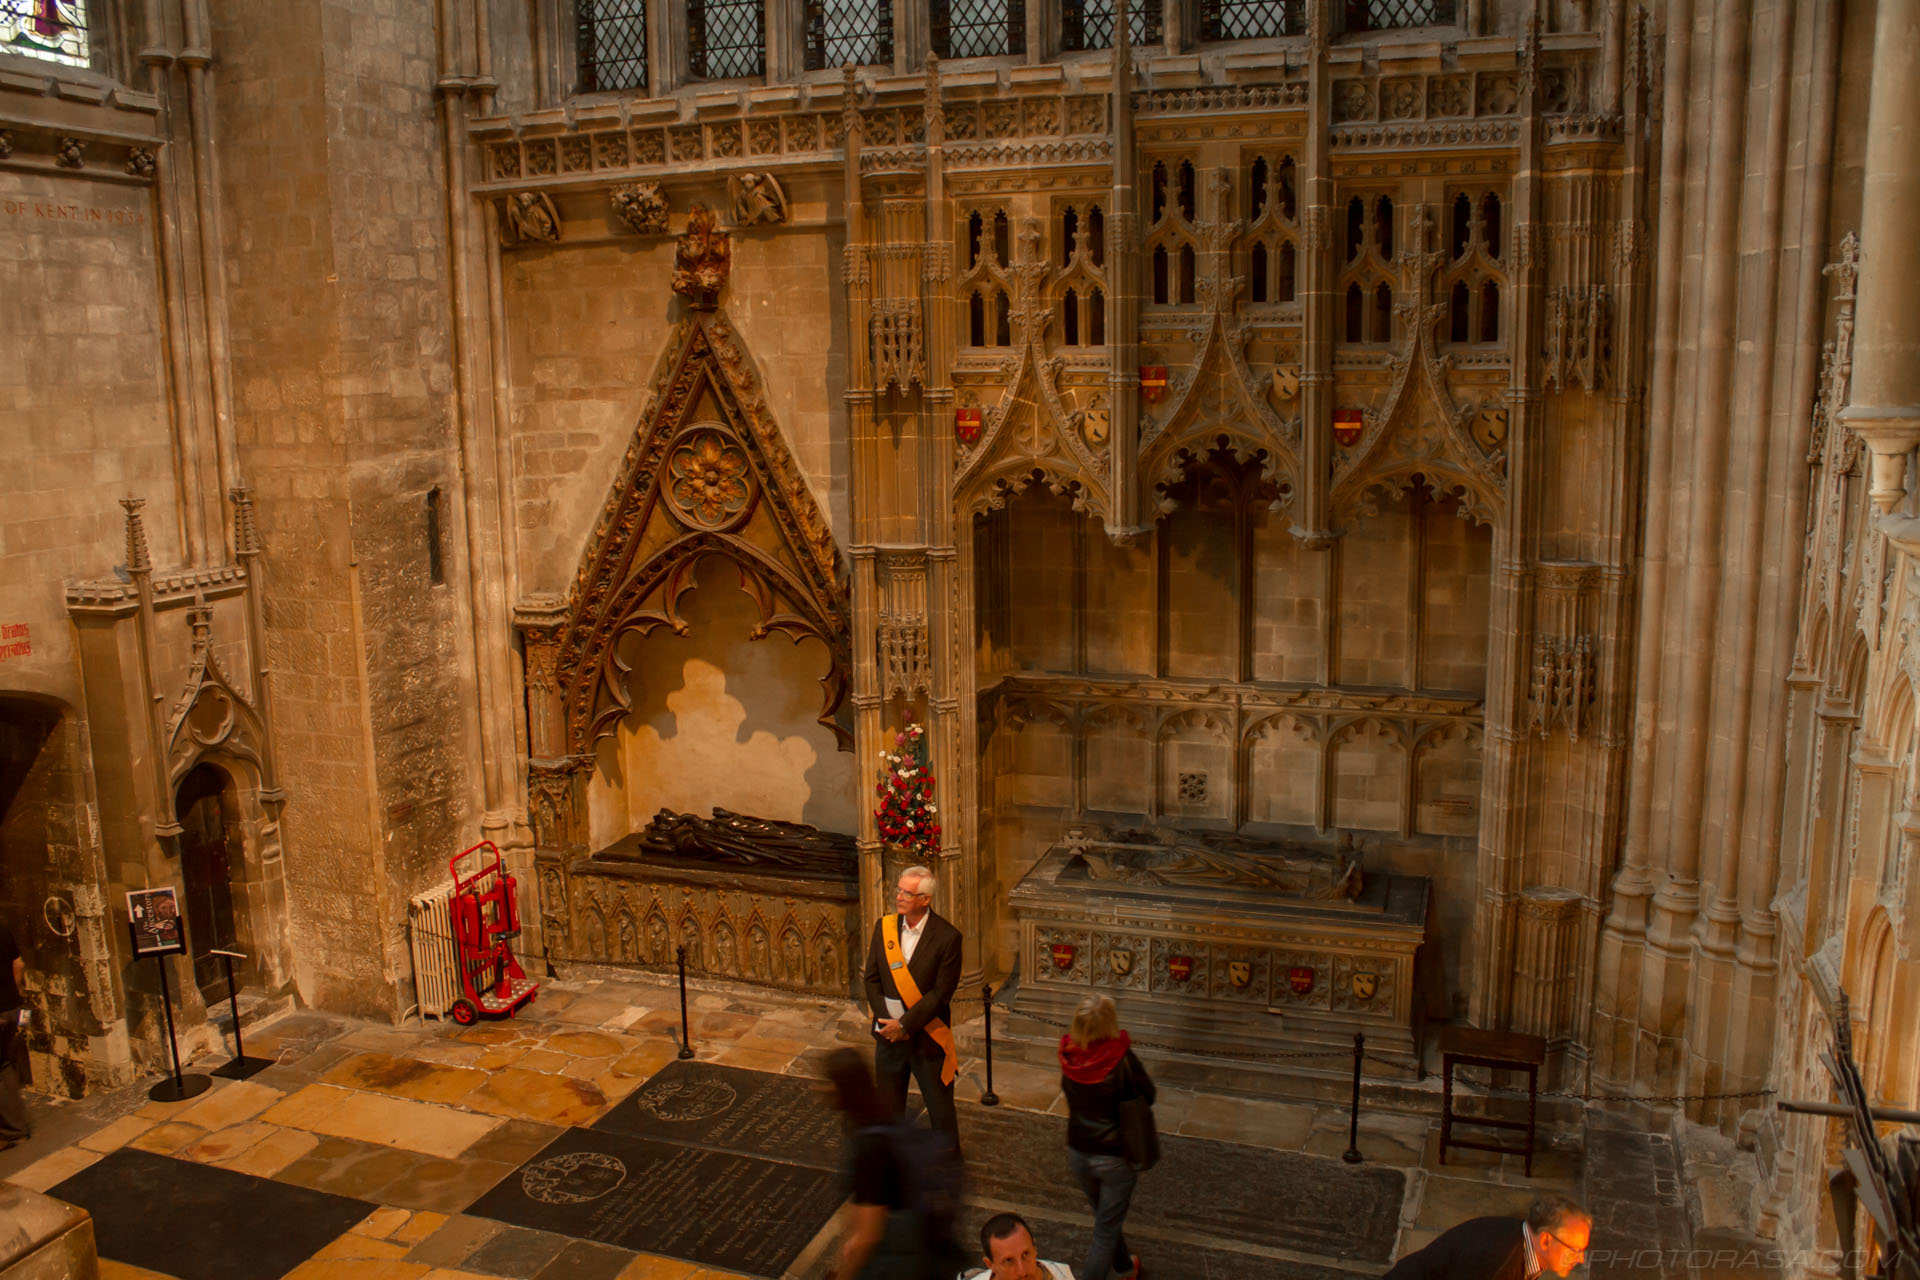 http://photorasa.com/canterbury-cathedral/north-east-corner-of-nave-near-crypt-entrance/